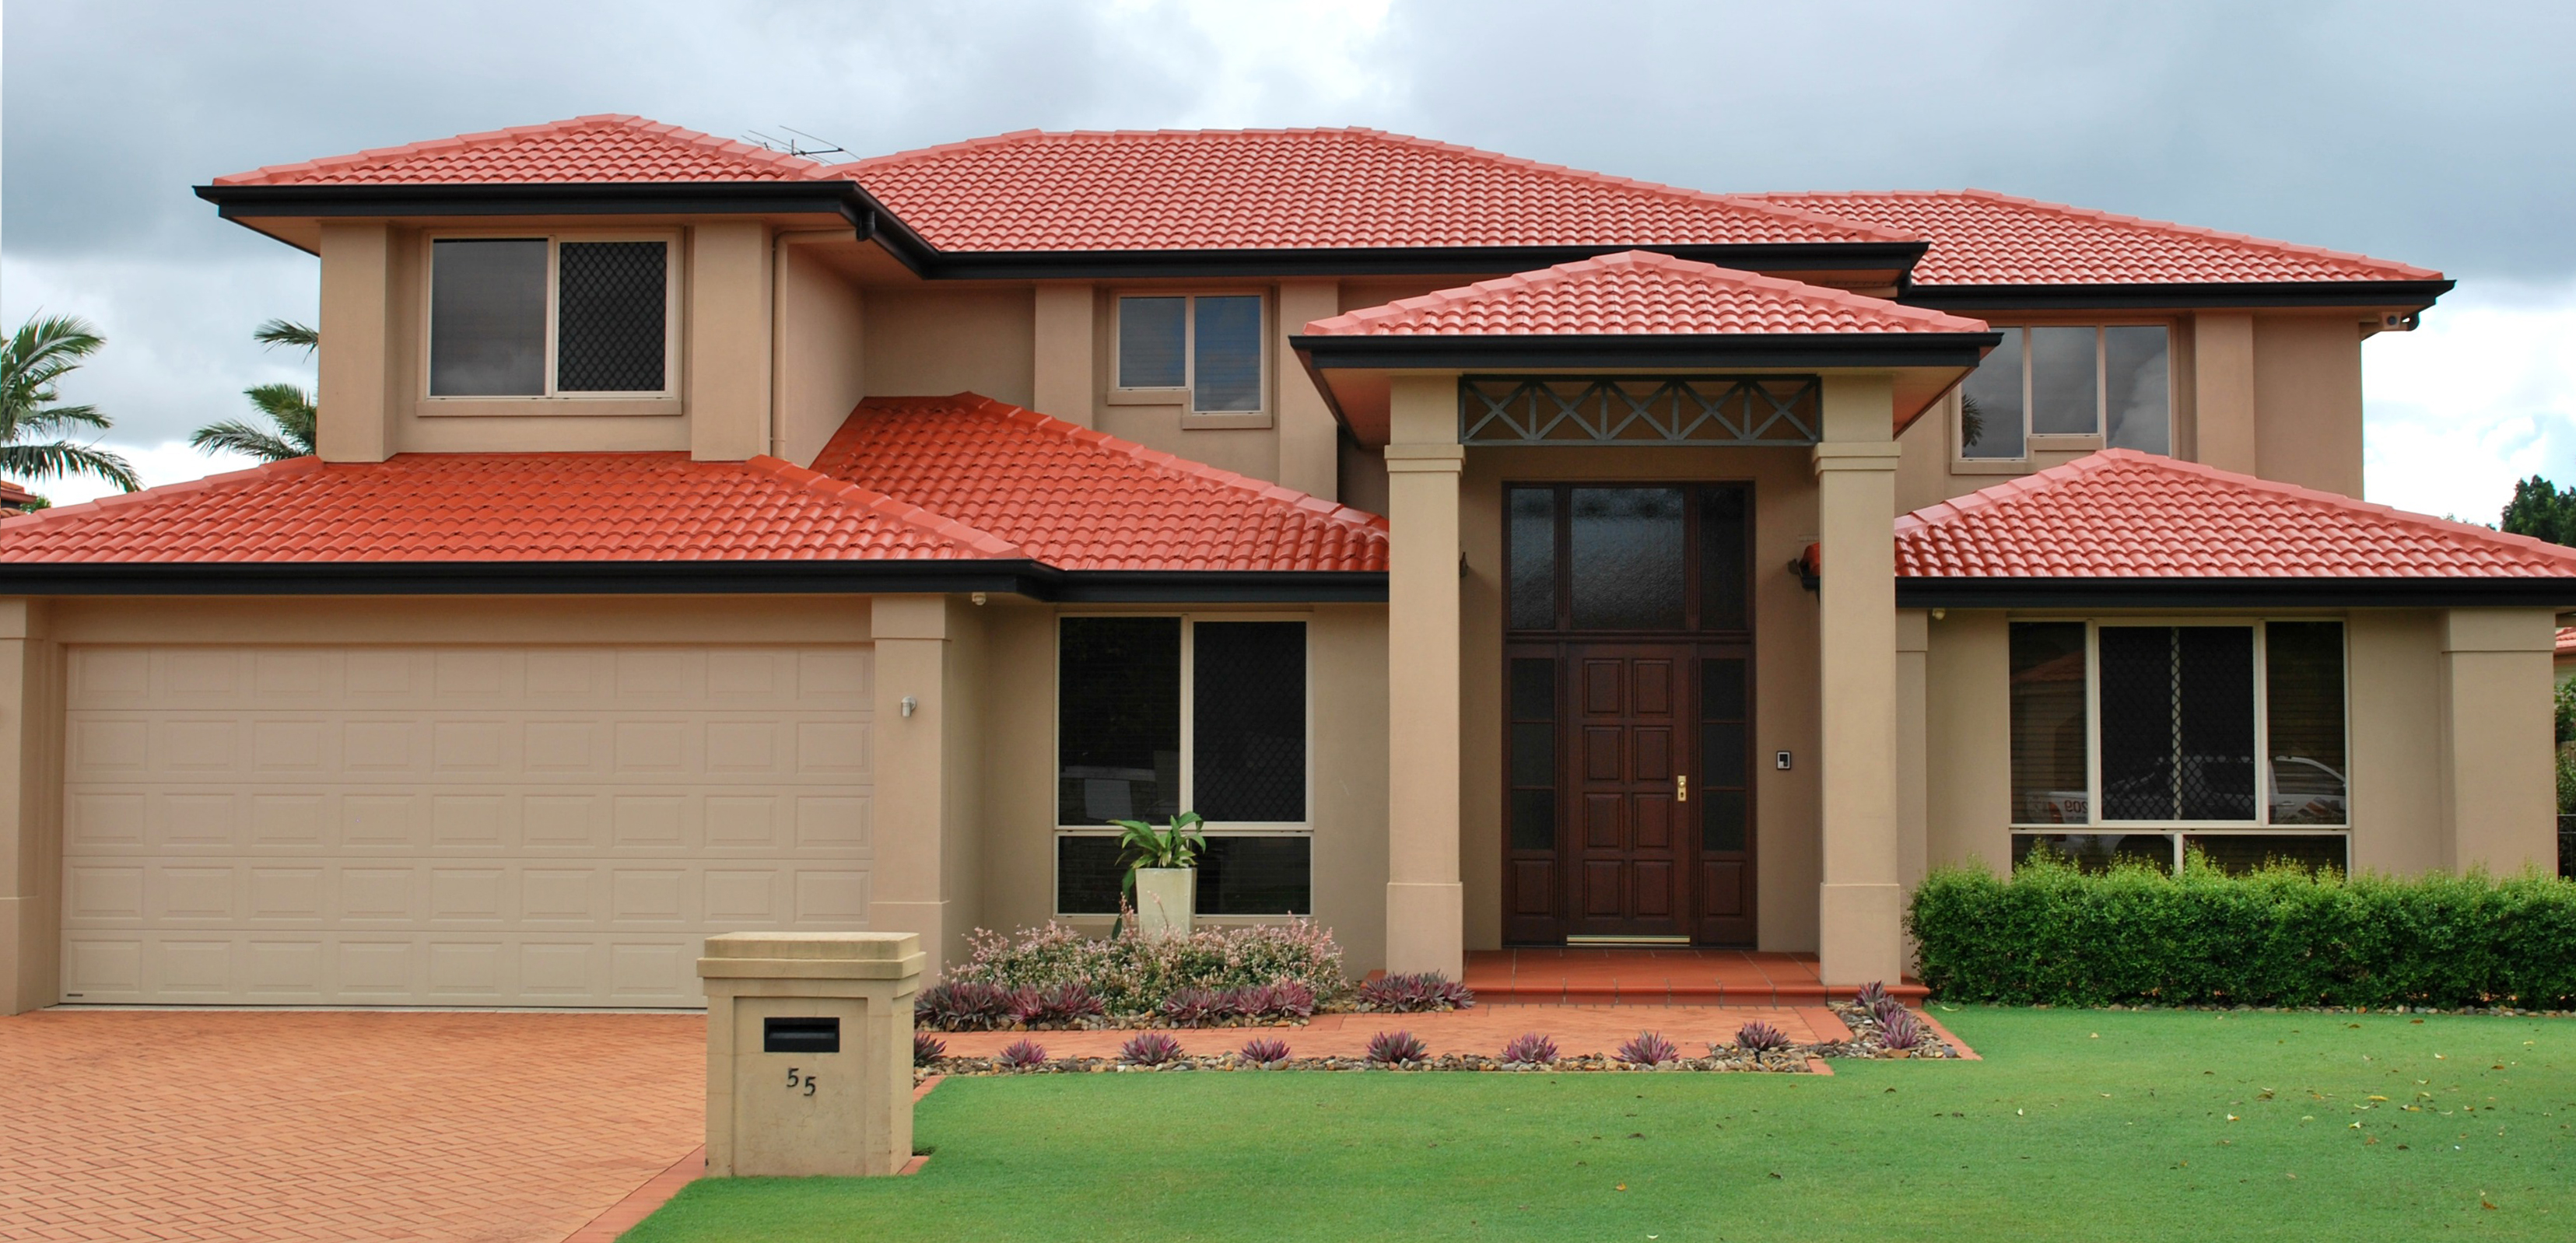 Brisco Roofing Your Roof Restoration Specialist